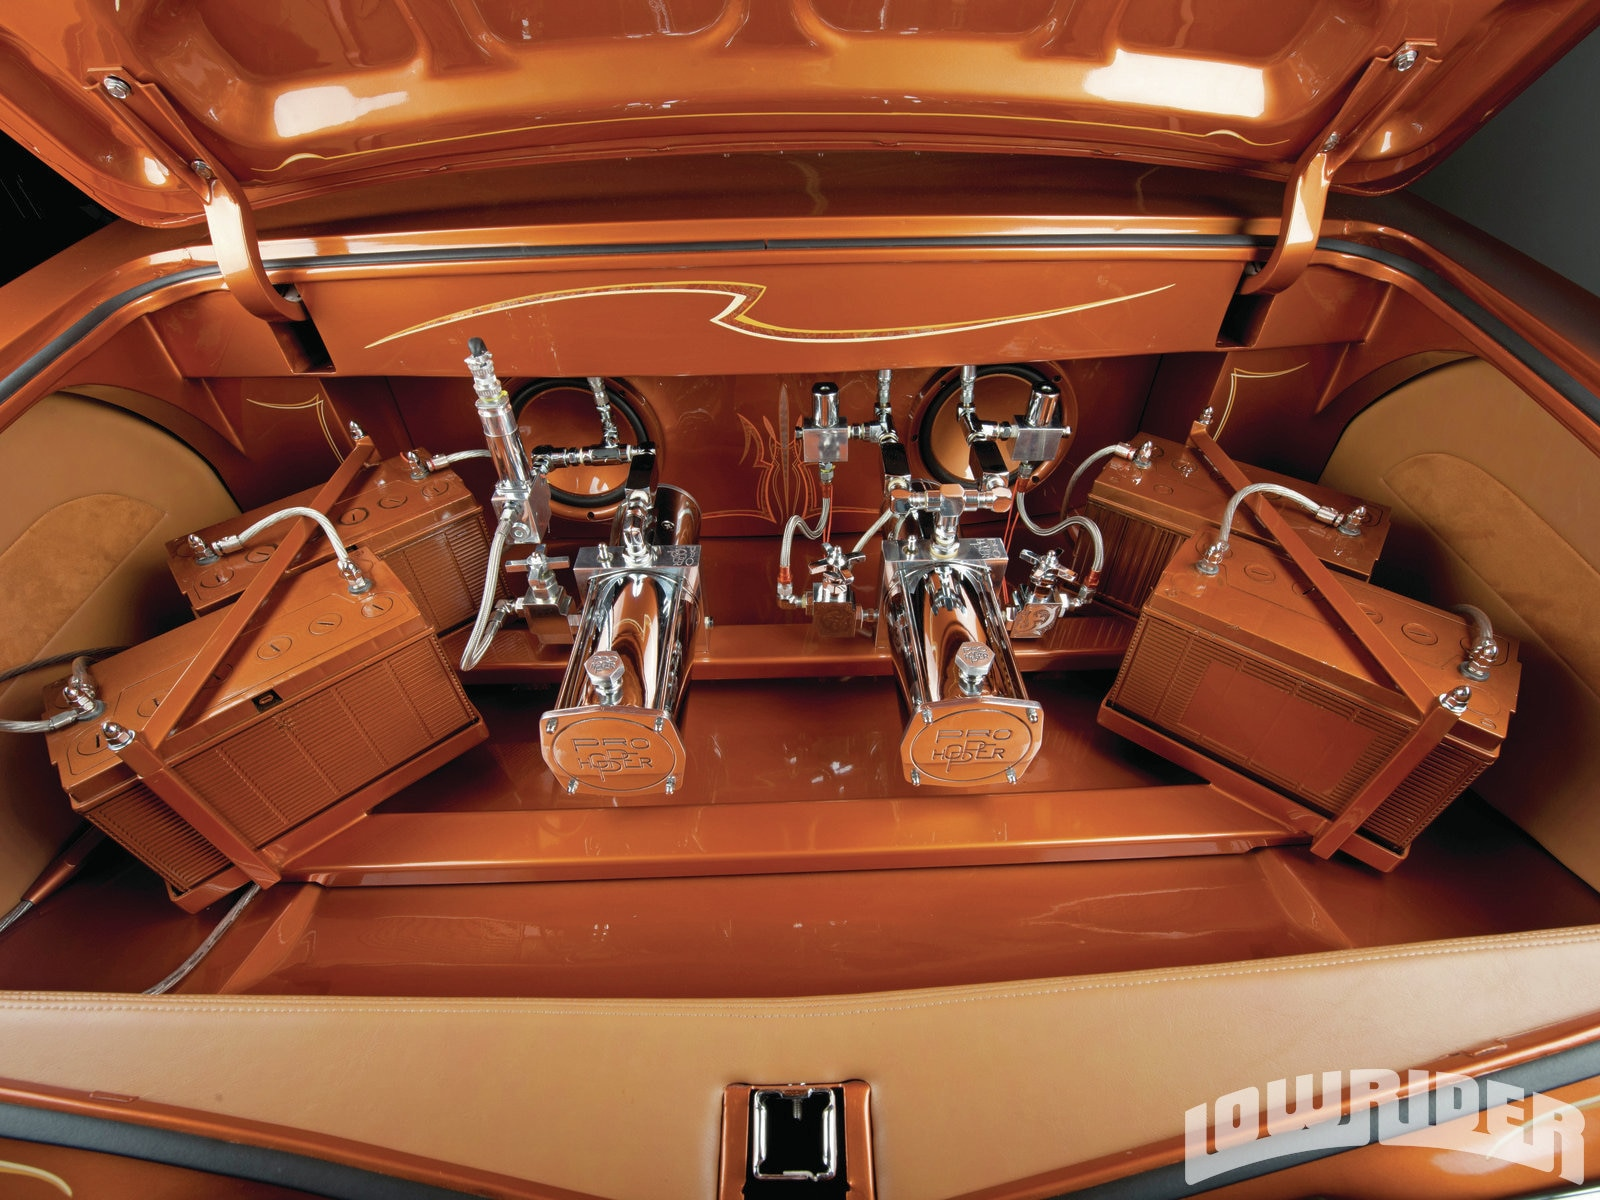 1967 Chevrolet Impala Convertible Supersport - Lowrider ...